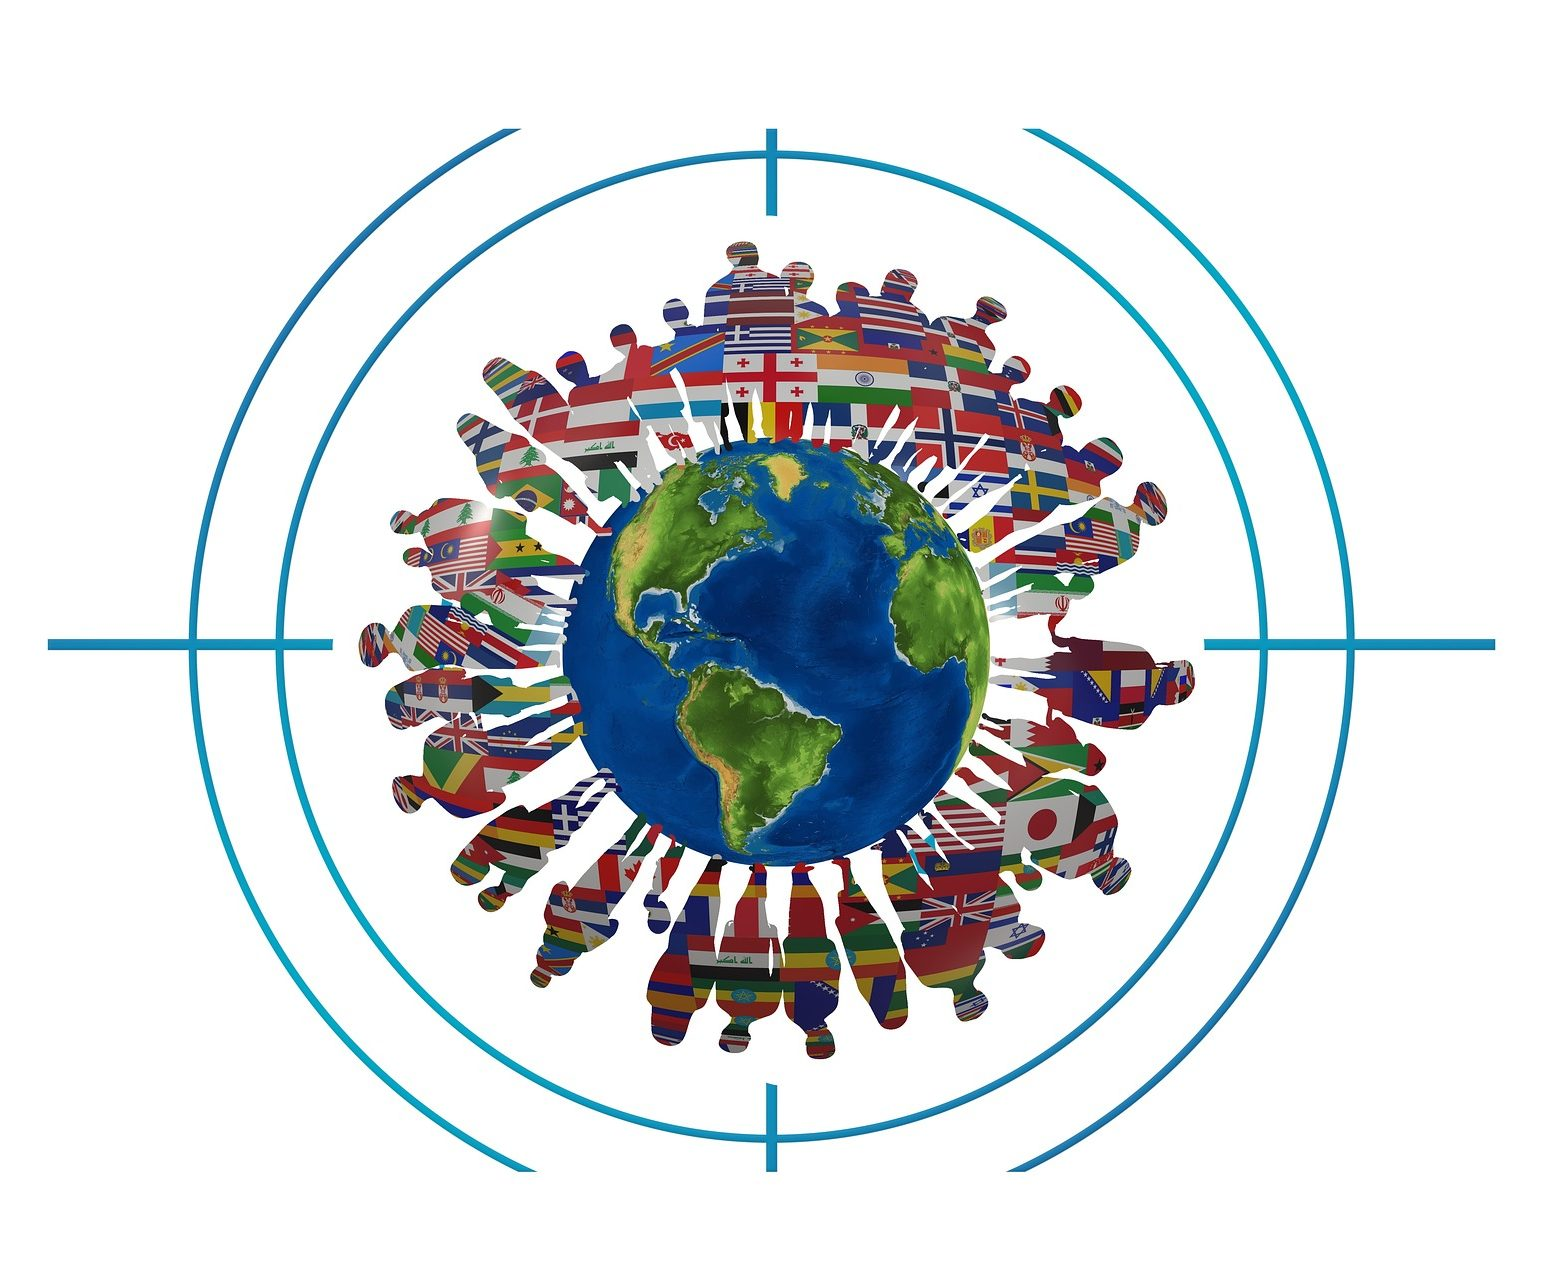 Image of a globe with the silhouettes of people standing on the circumference of the globe. The silhouette of the people has been filled in with the flags from countries in the world.